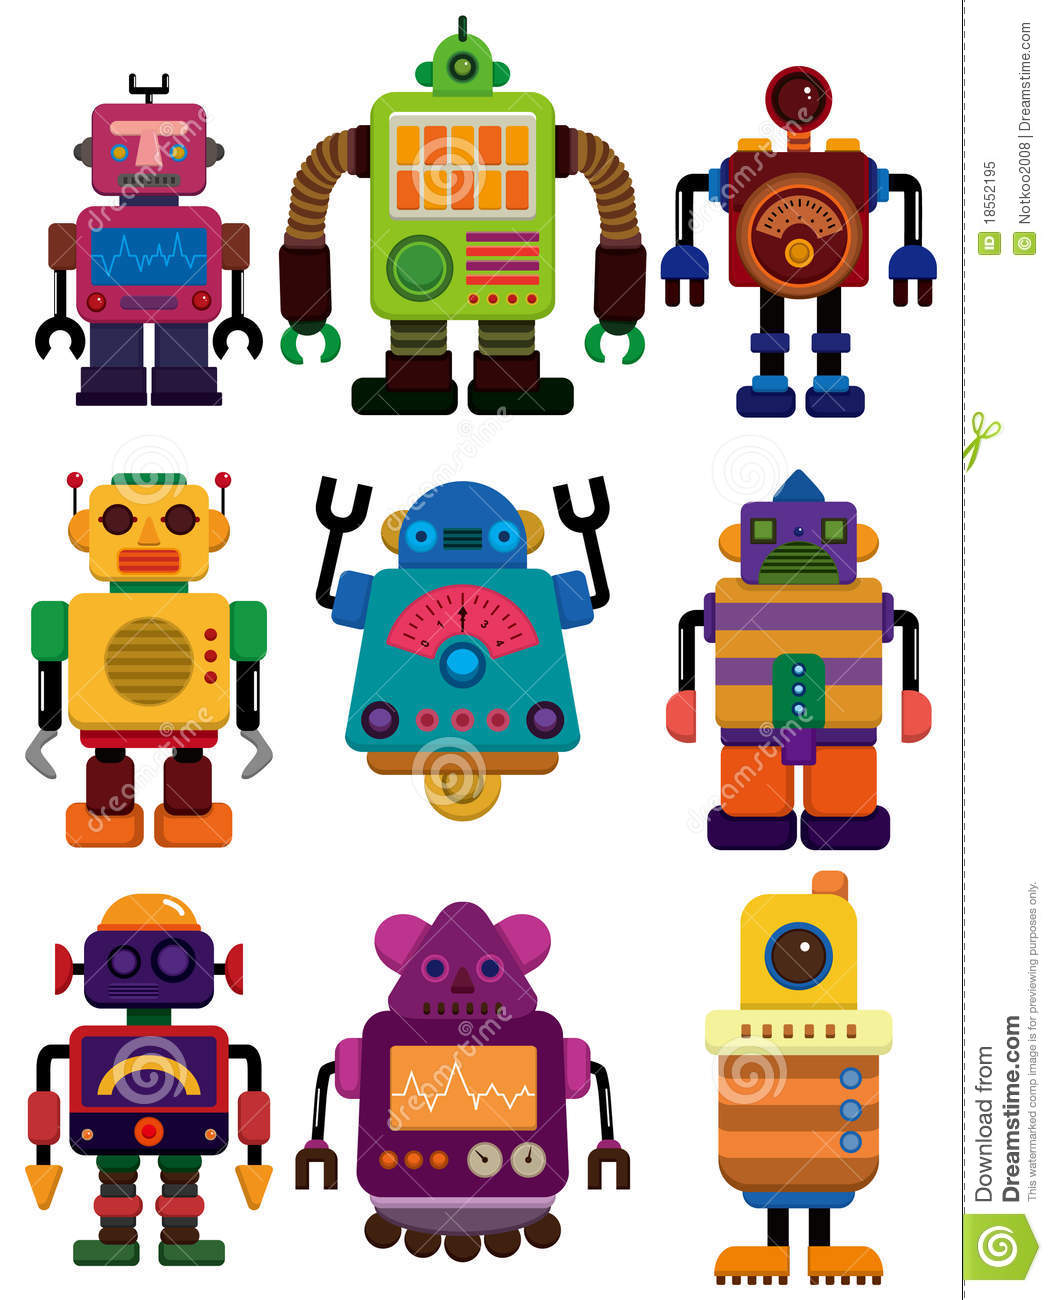 Cartoon Color Robot Icon Stock Vector. Illustration Of